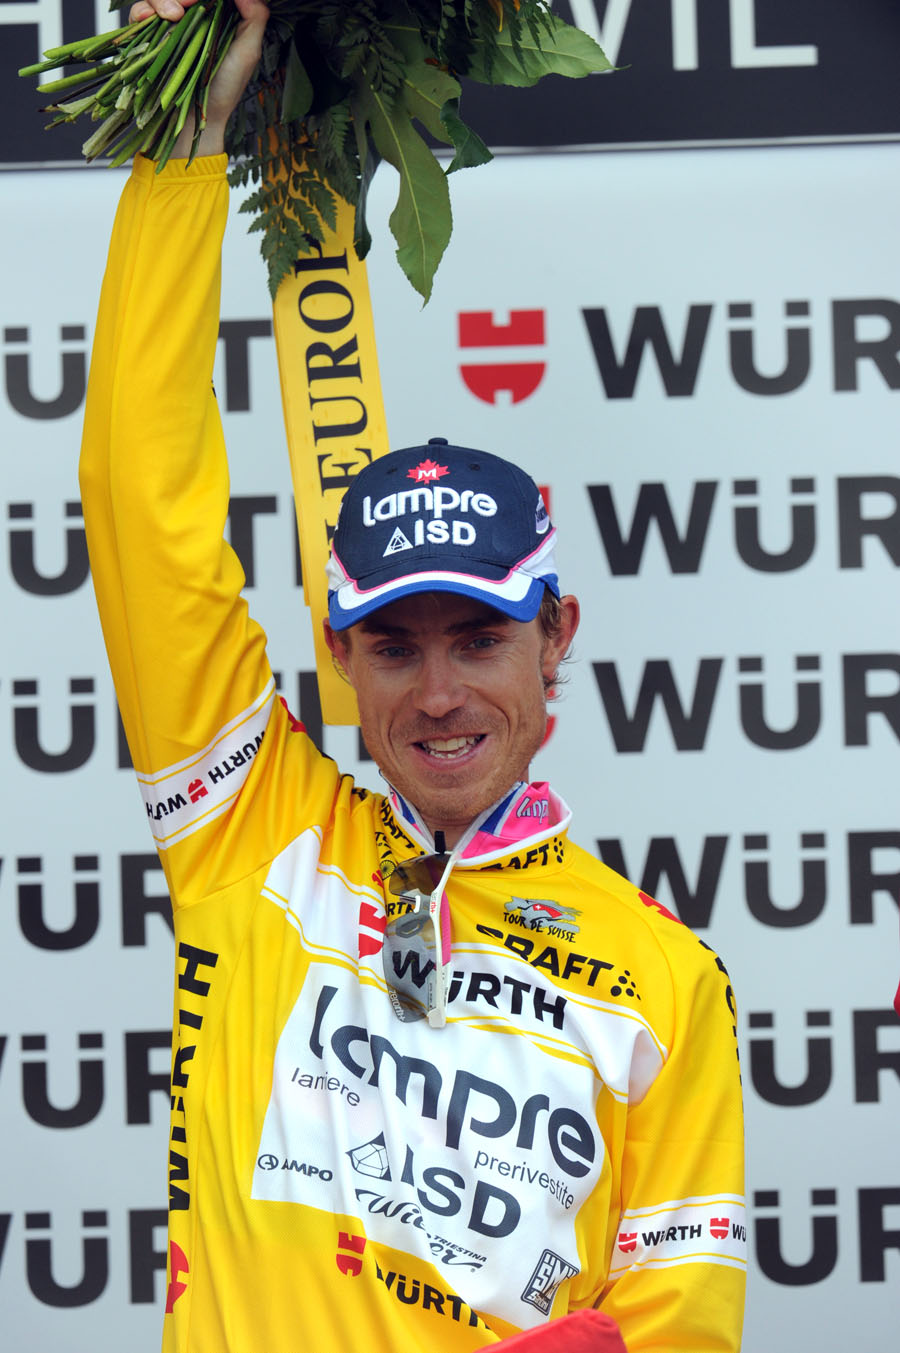 Damiano Cunego on podium, Tour de Suisse 2011, stage four